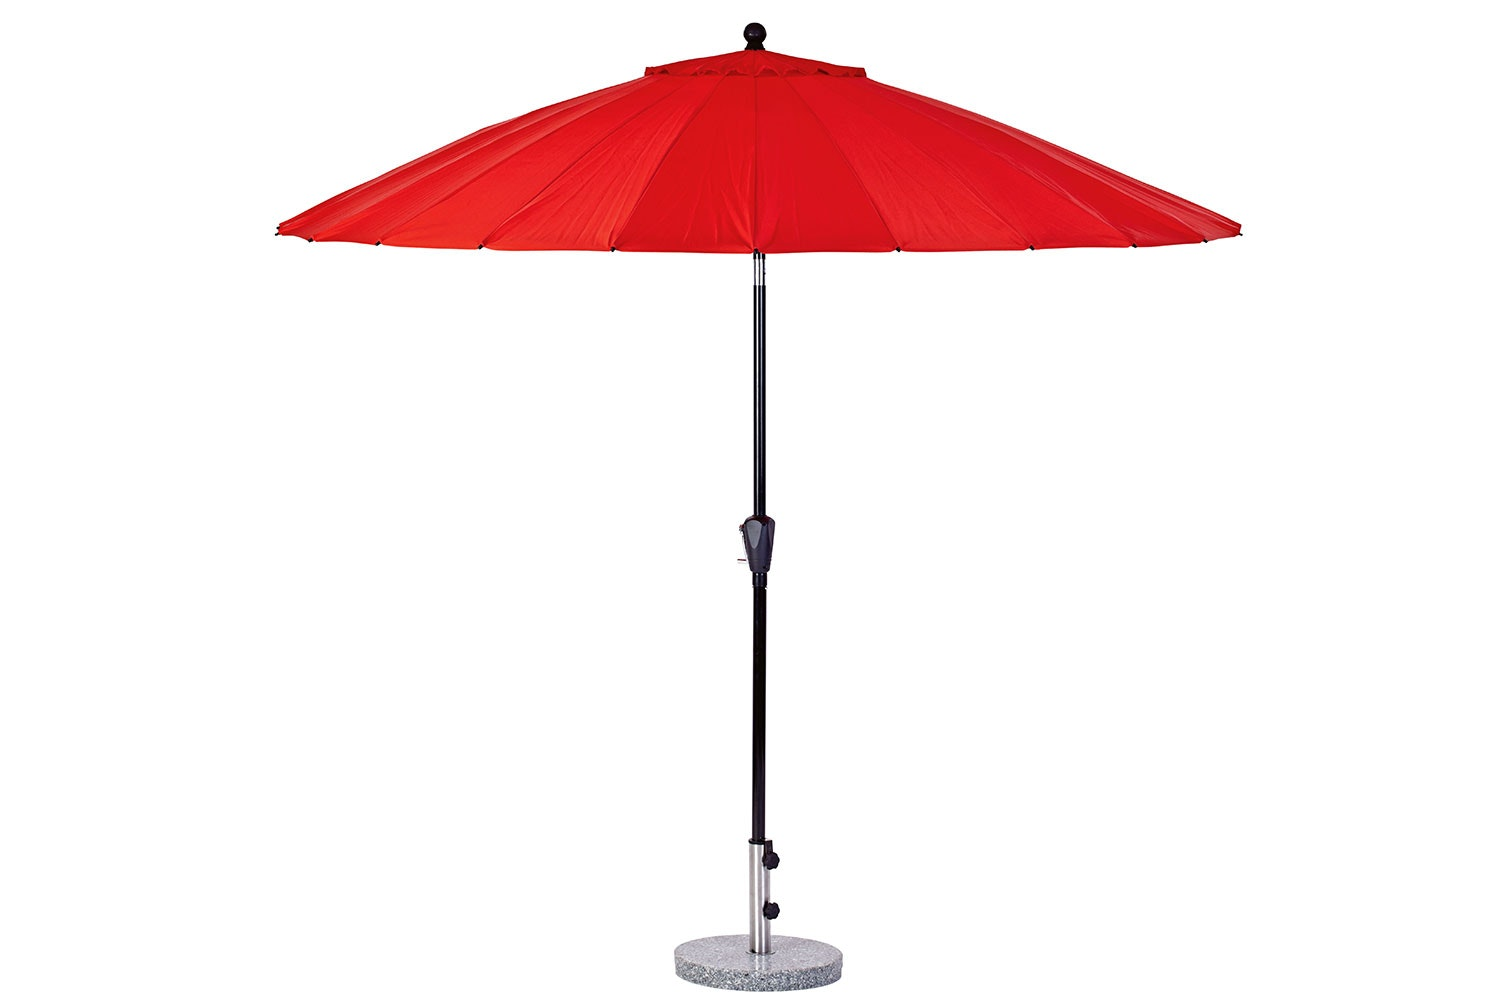 Oriental 2.7m Red Outdoor Umbrella with 25kg  Granite Base by Peros